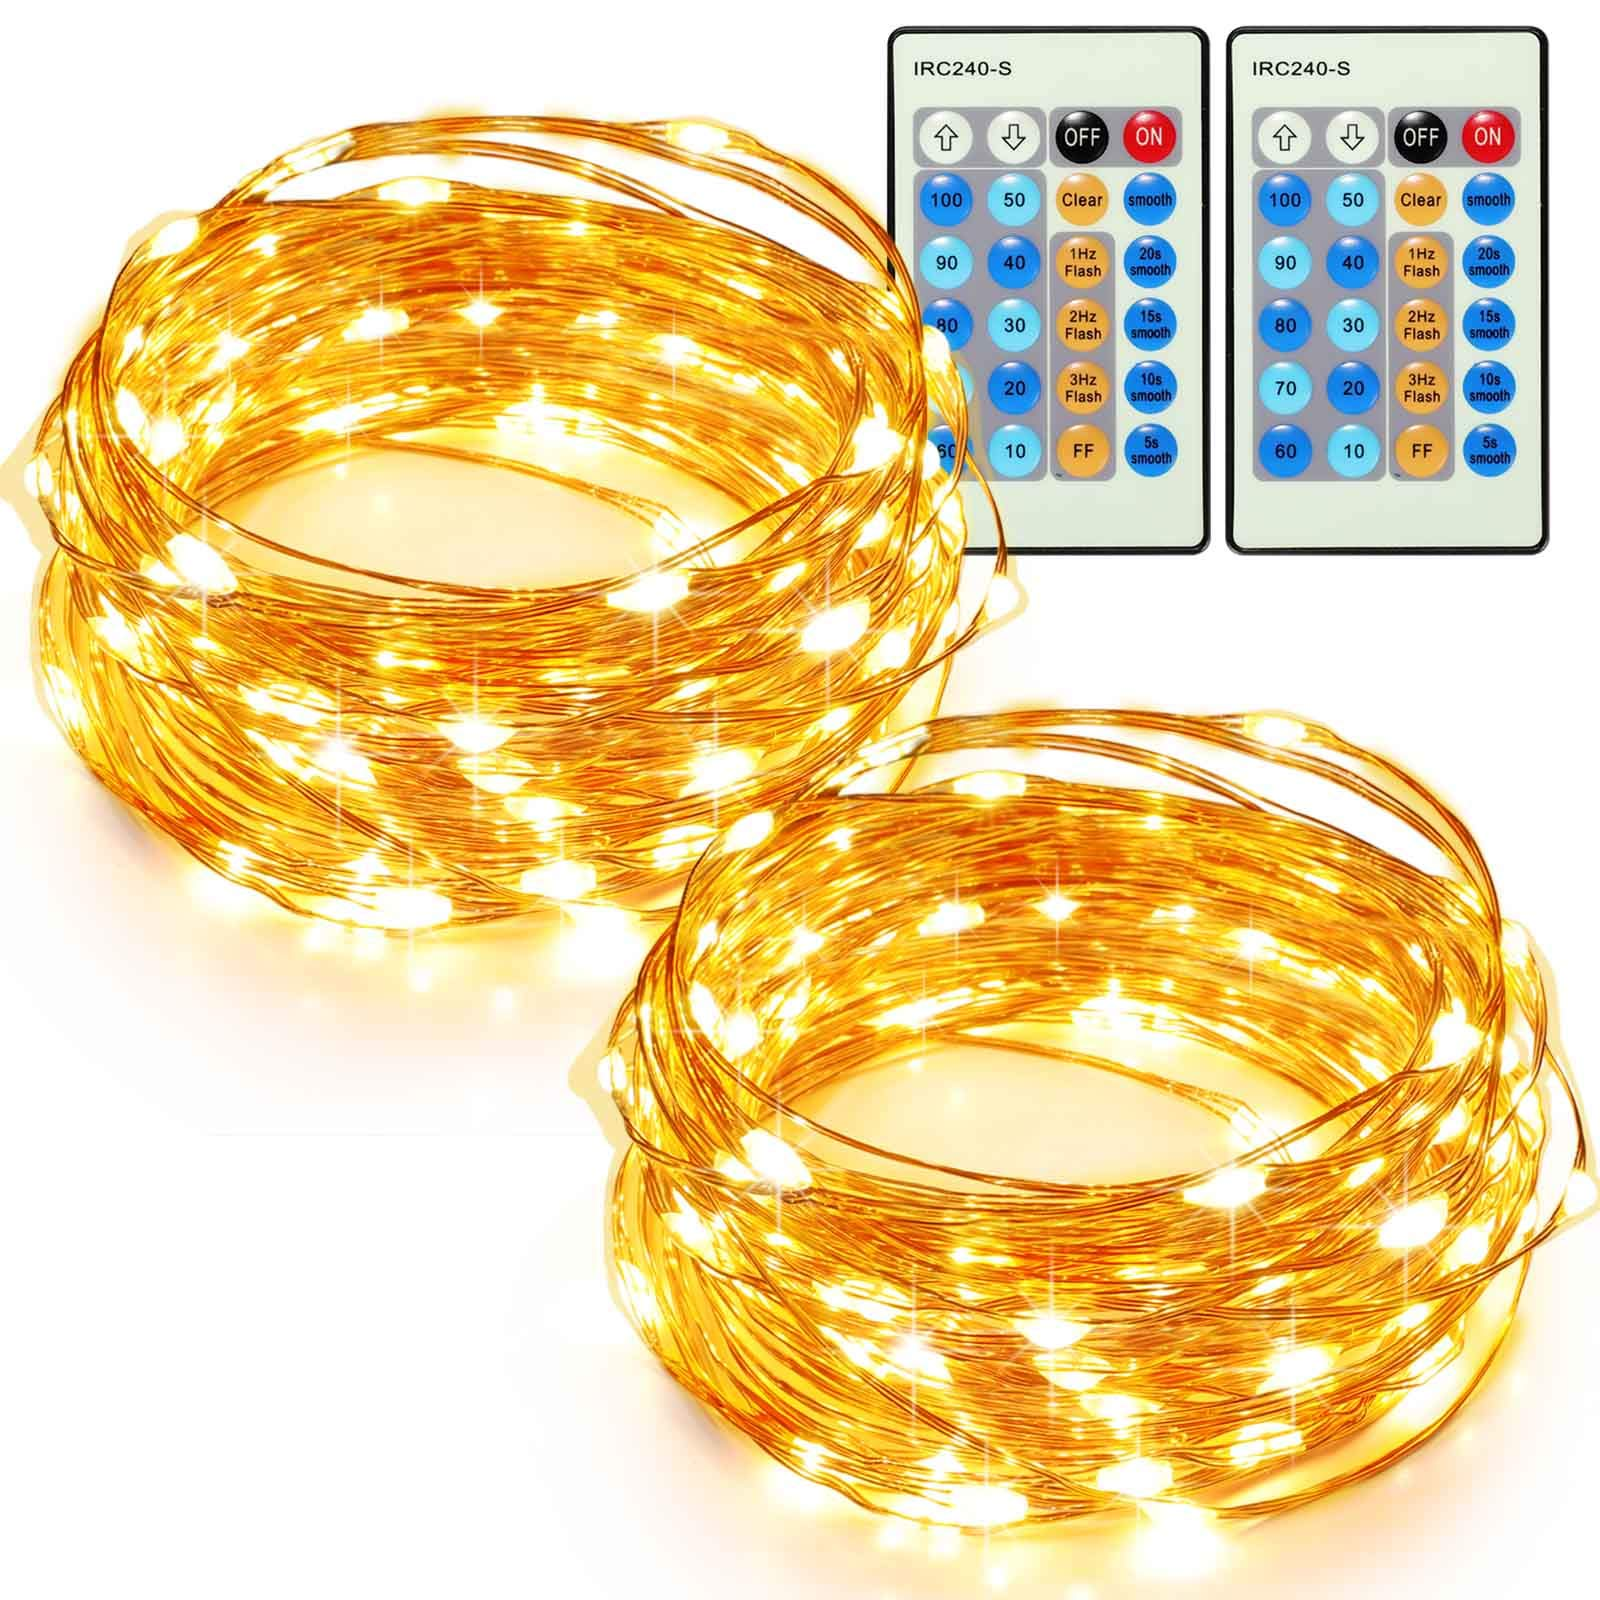 TaoTronics 33ft 100 LED String Lights Plug In 2 Pack Dimmable with Remote Control, Waterproof Decorative Lights for Bedroom, Patio, Garden Yard, Parties, Wedding(Copper Wire Lights, Warm White) by TaoTronics